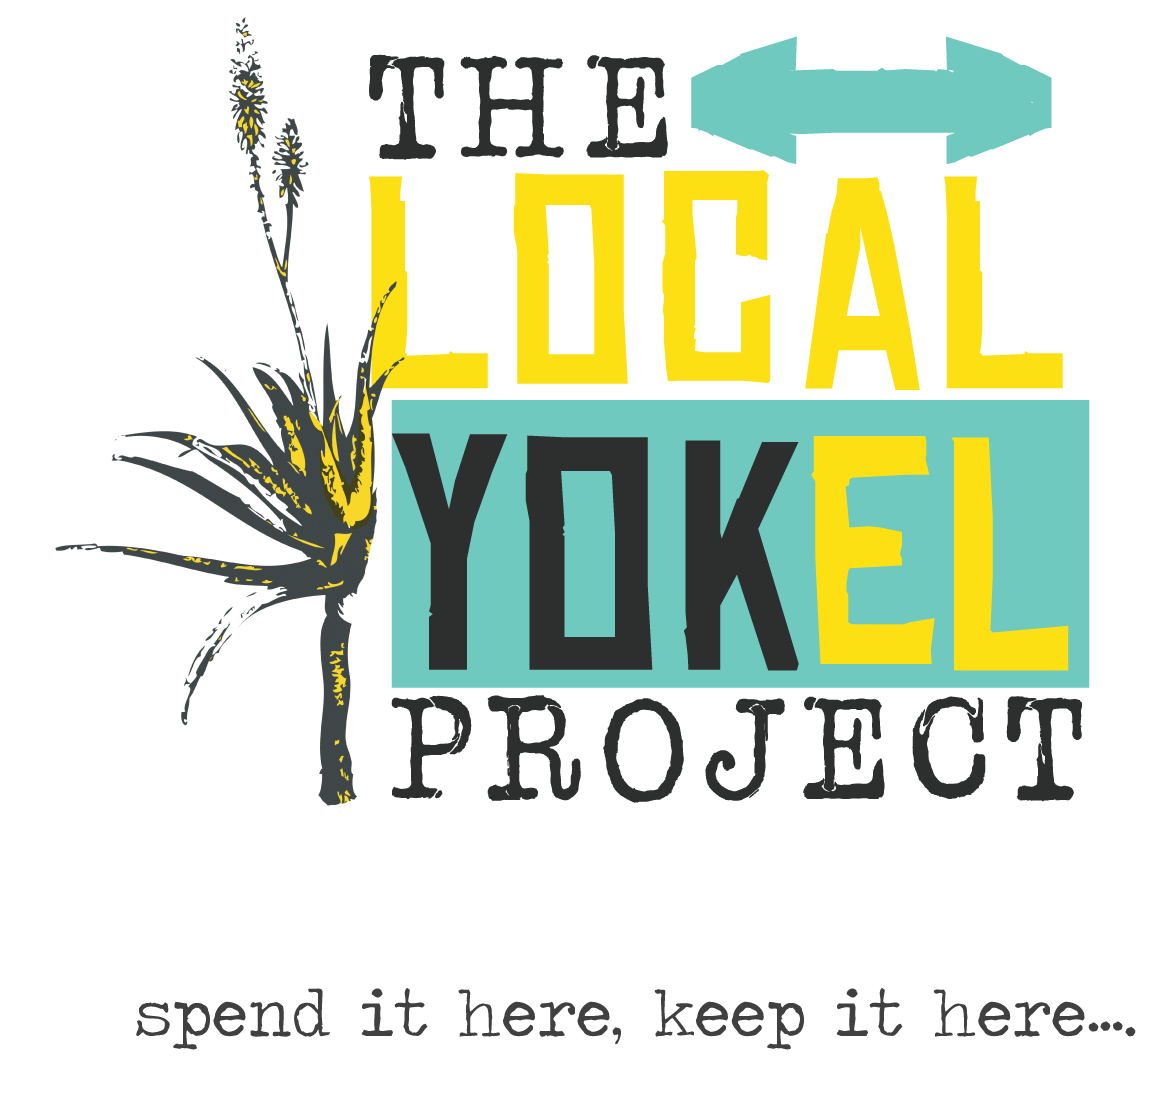 Proud member of the Local Yokel Project, an initiative that helps to educate consumers on the importance of supporting their local economy first.